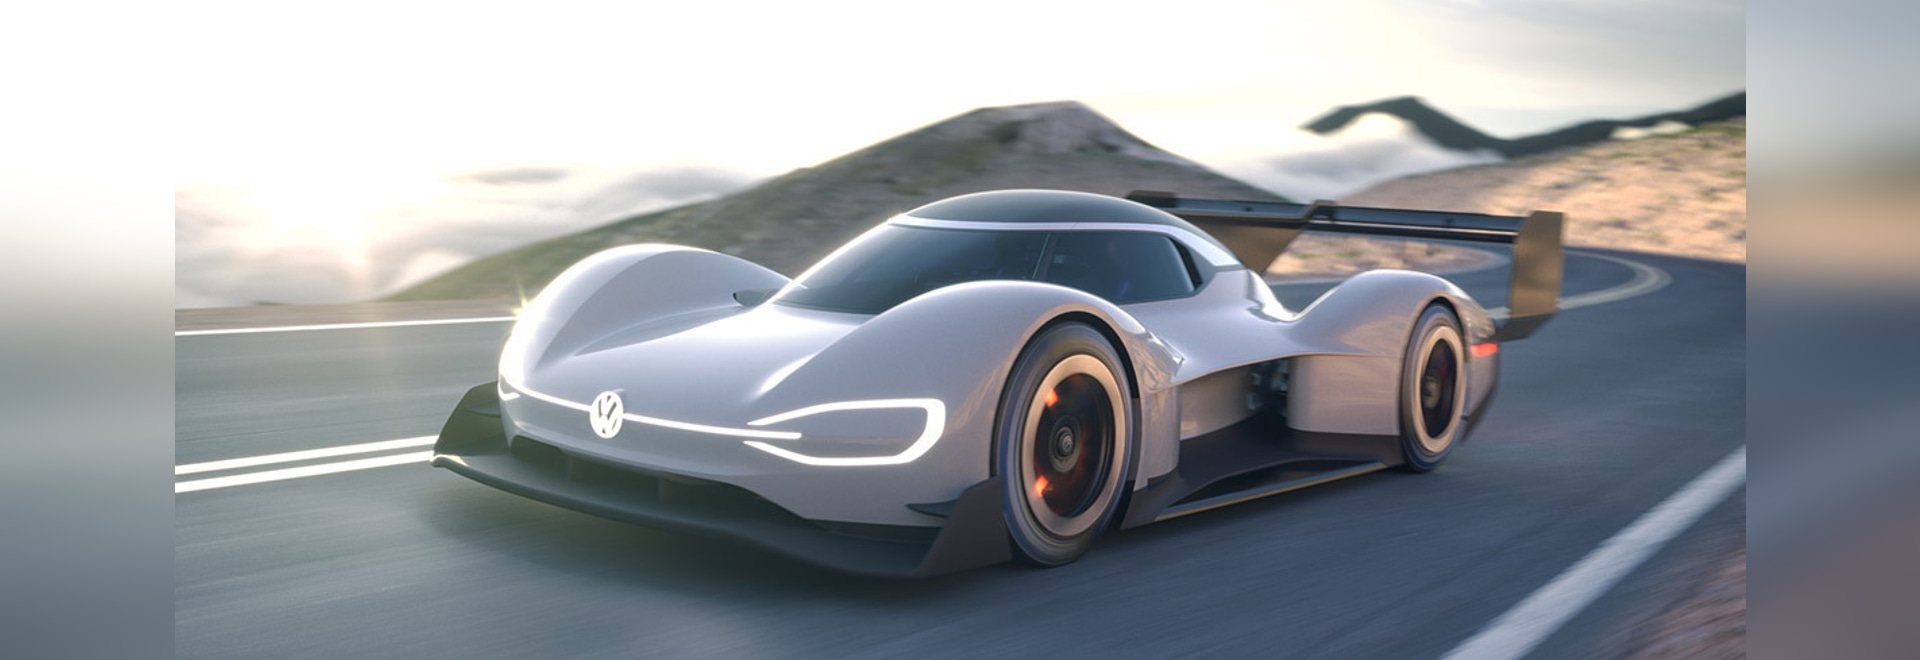 Charging to the peak – Volkswagen I.D. R Pikes Peak set for world premier